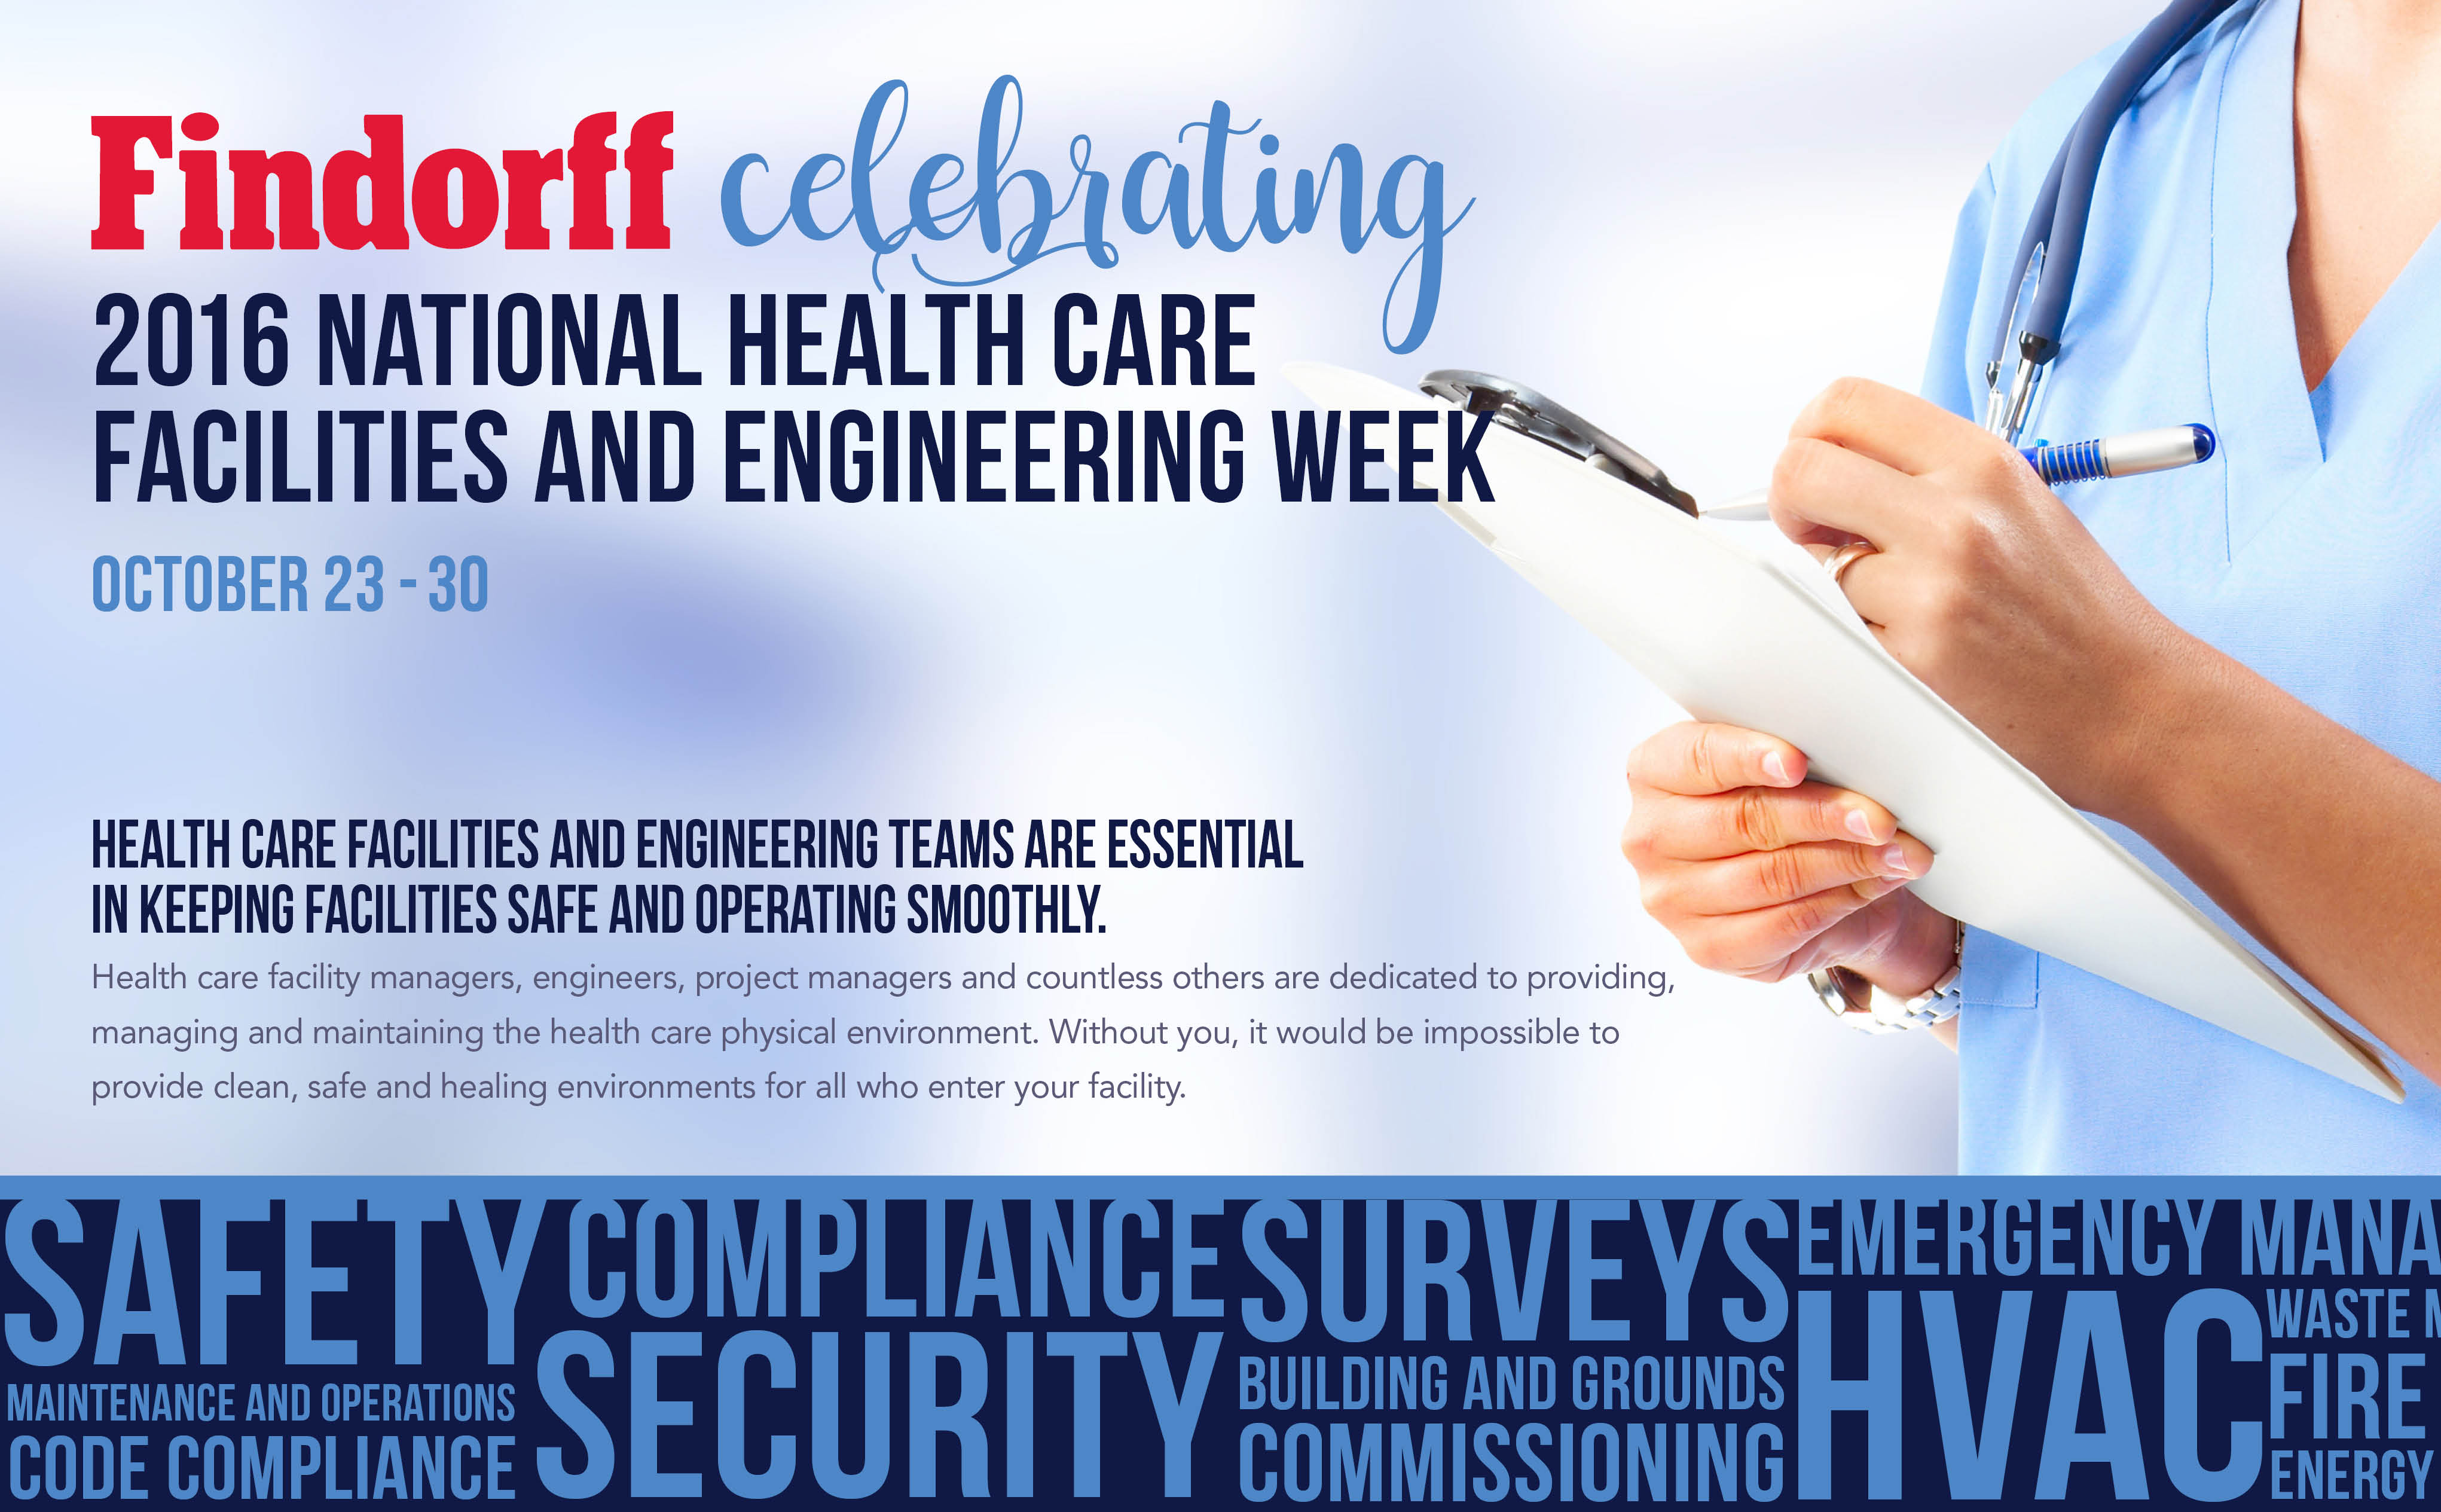 National Health Care Facilities And Engineering Week